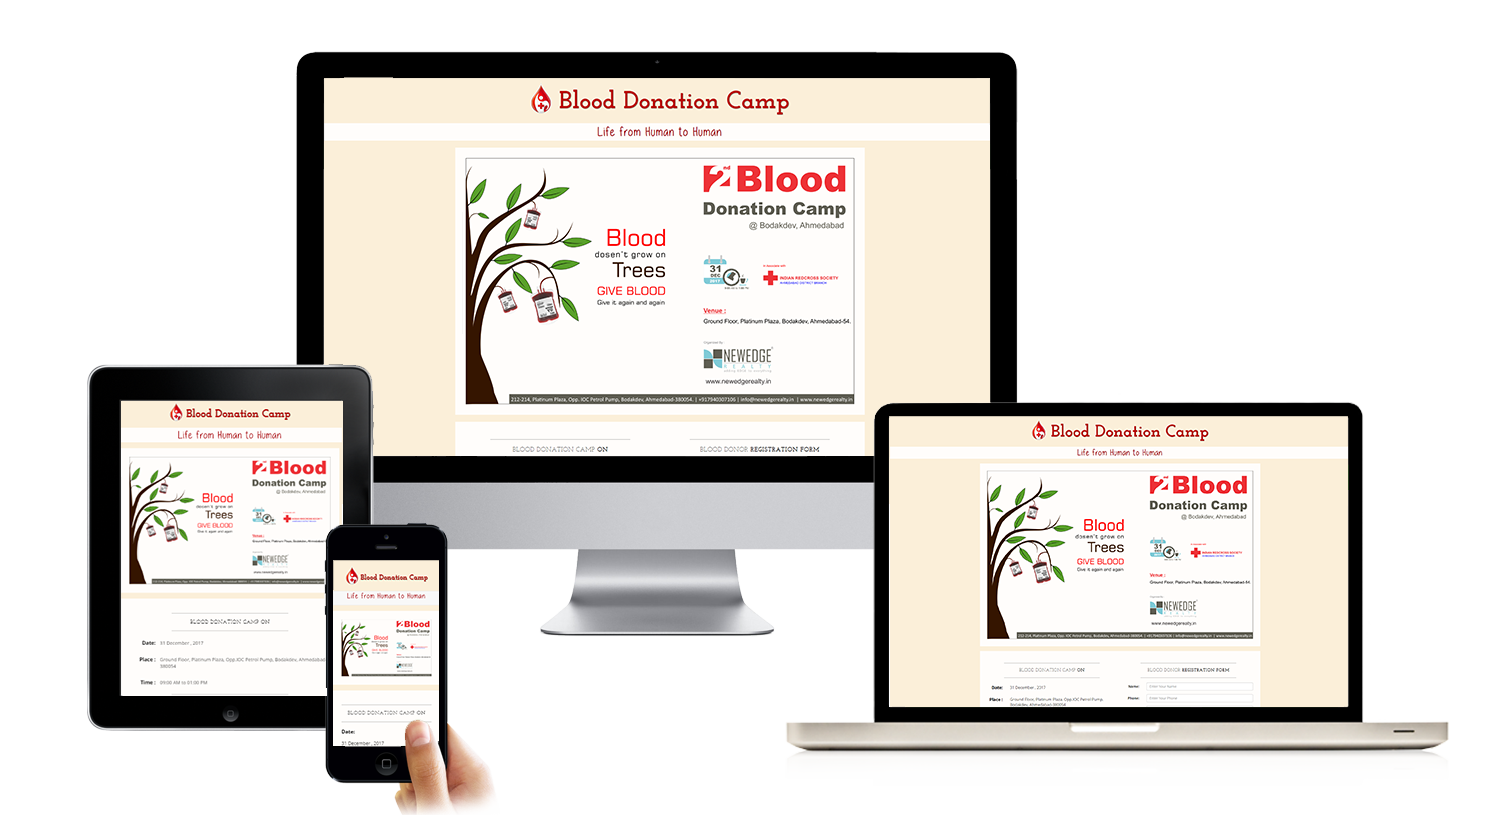 Website for Blood Donation Camp